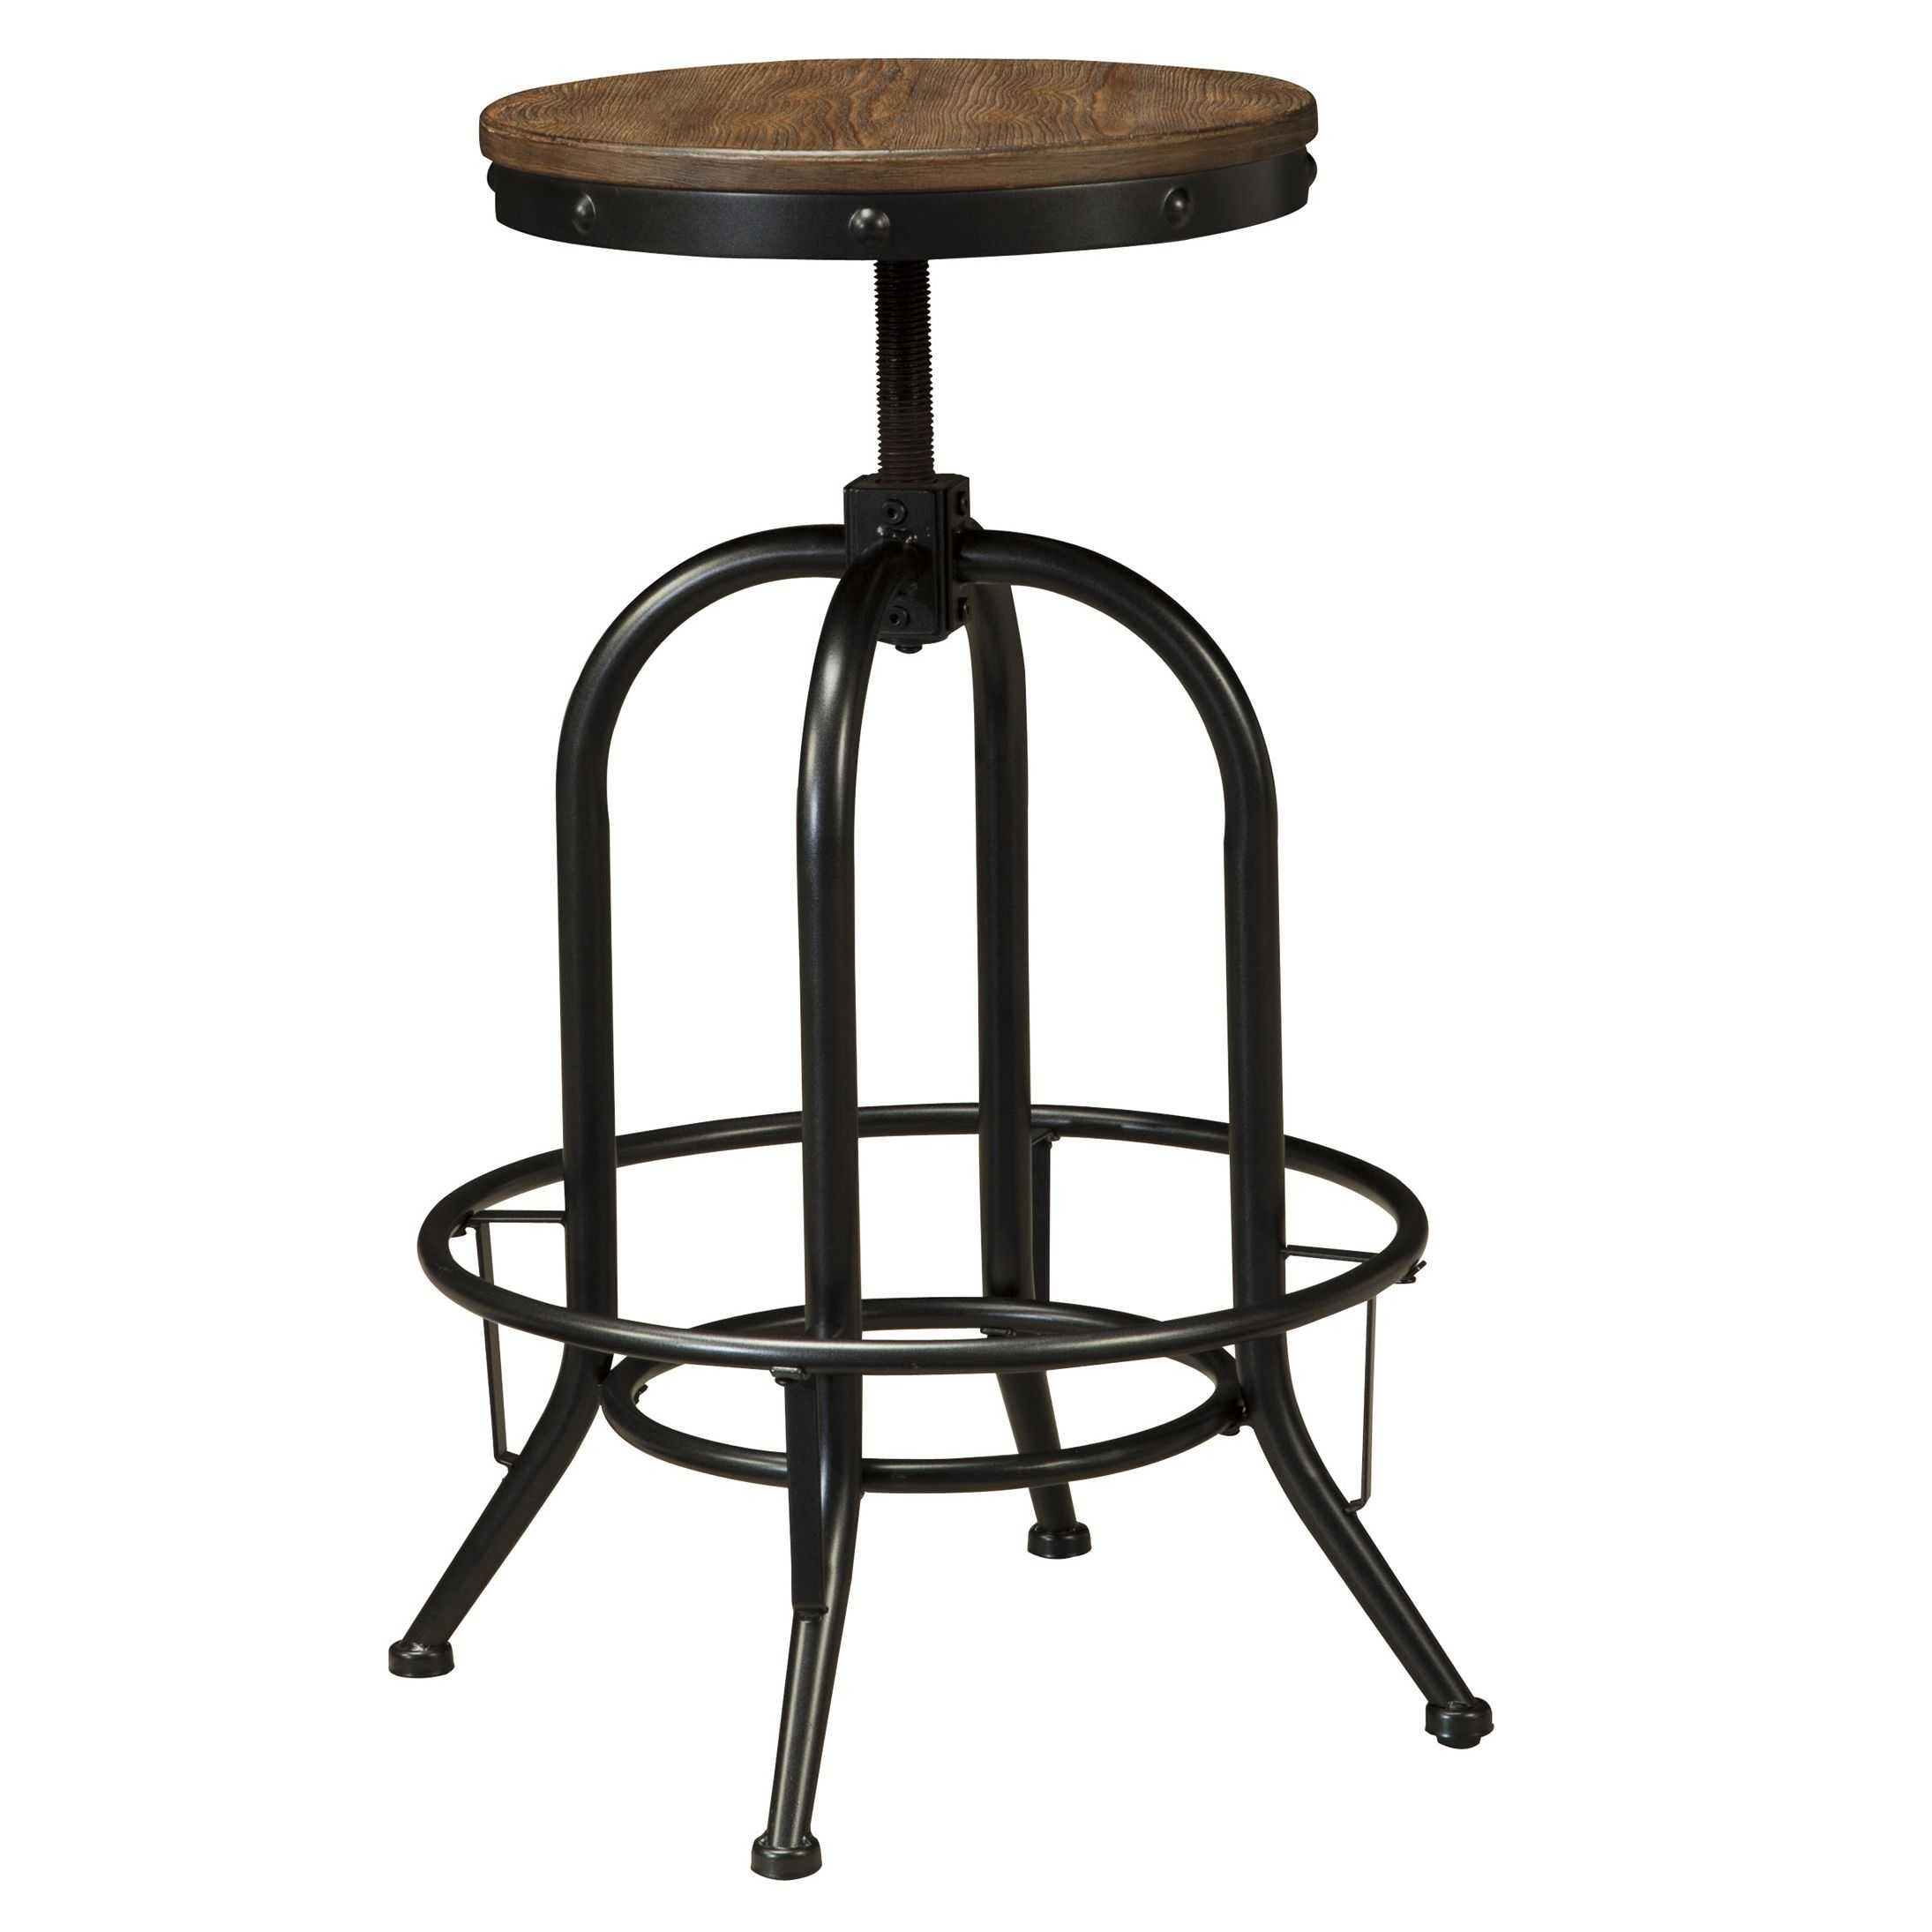 Brilliant Empire Adjustable Height Swivel Bar Stool Kitchen Squirreltailoven Fun Painted Chair Ideas Images Squirreltailovenorg